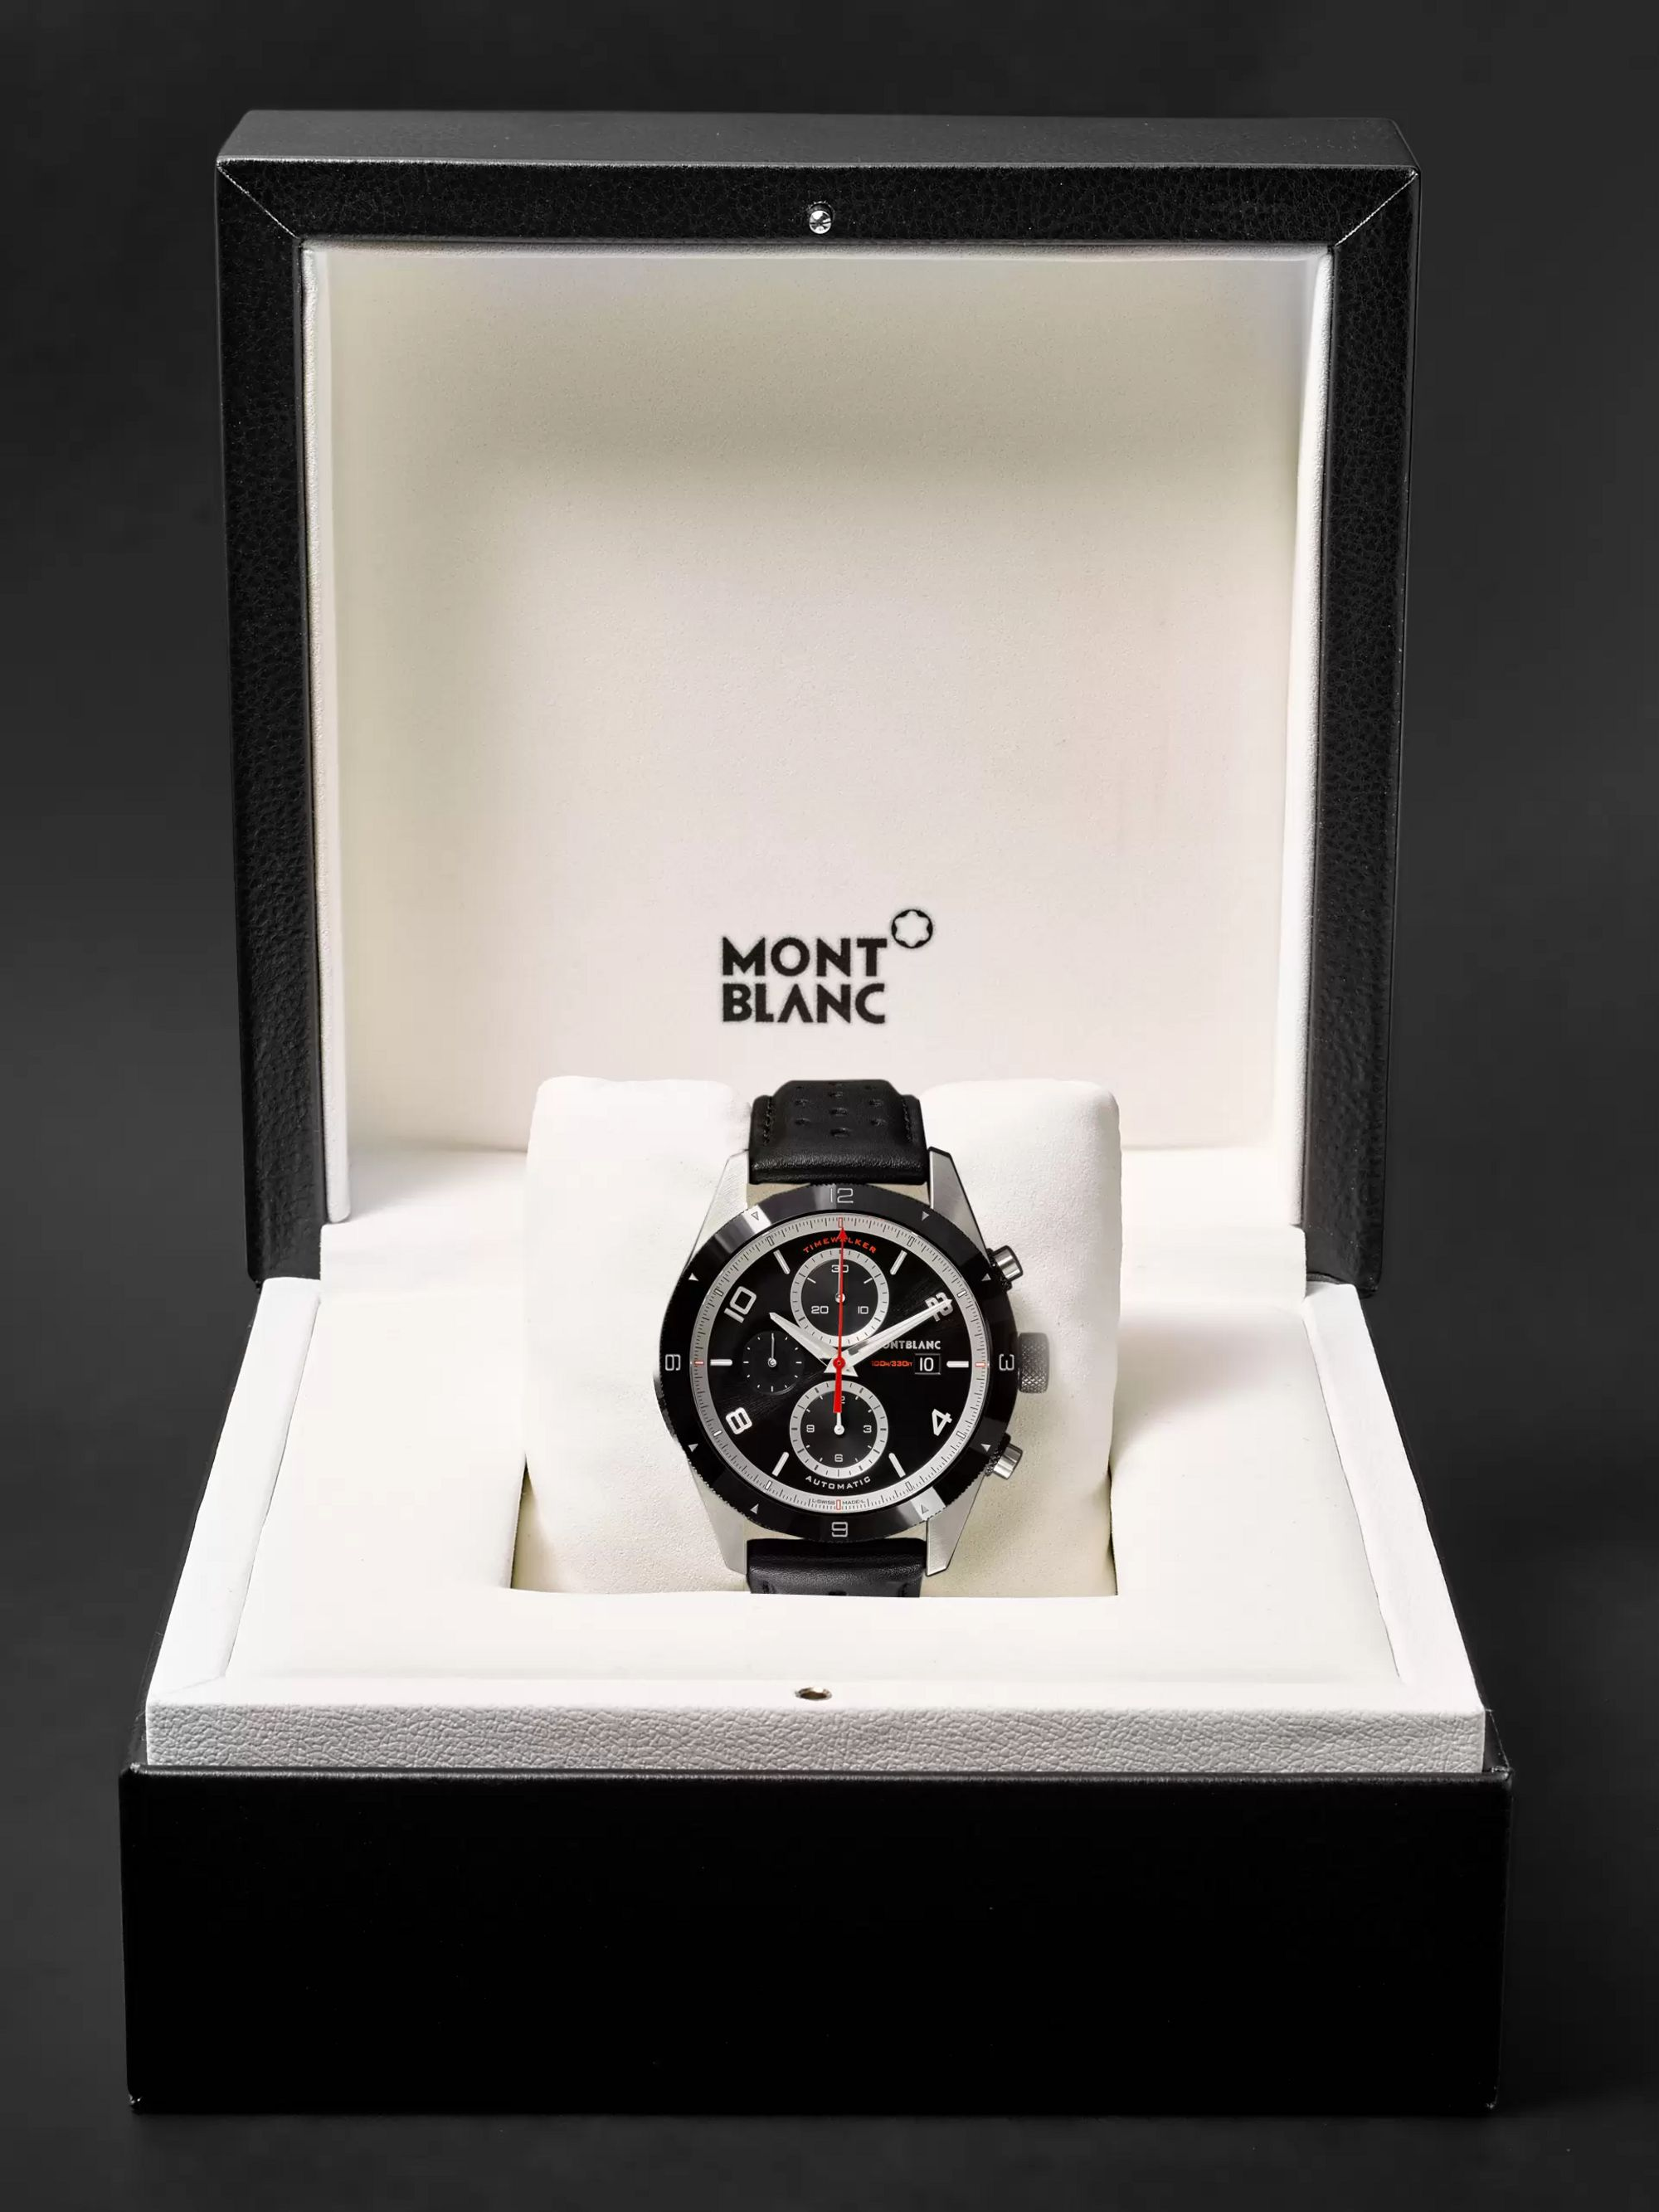 Montblanc TimeWalker Automatic Chronograph 43mm Stainless Steel, Ceramic and Leather Watch, Ref. No. 116098